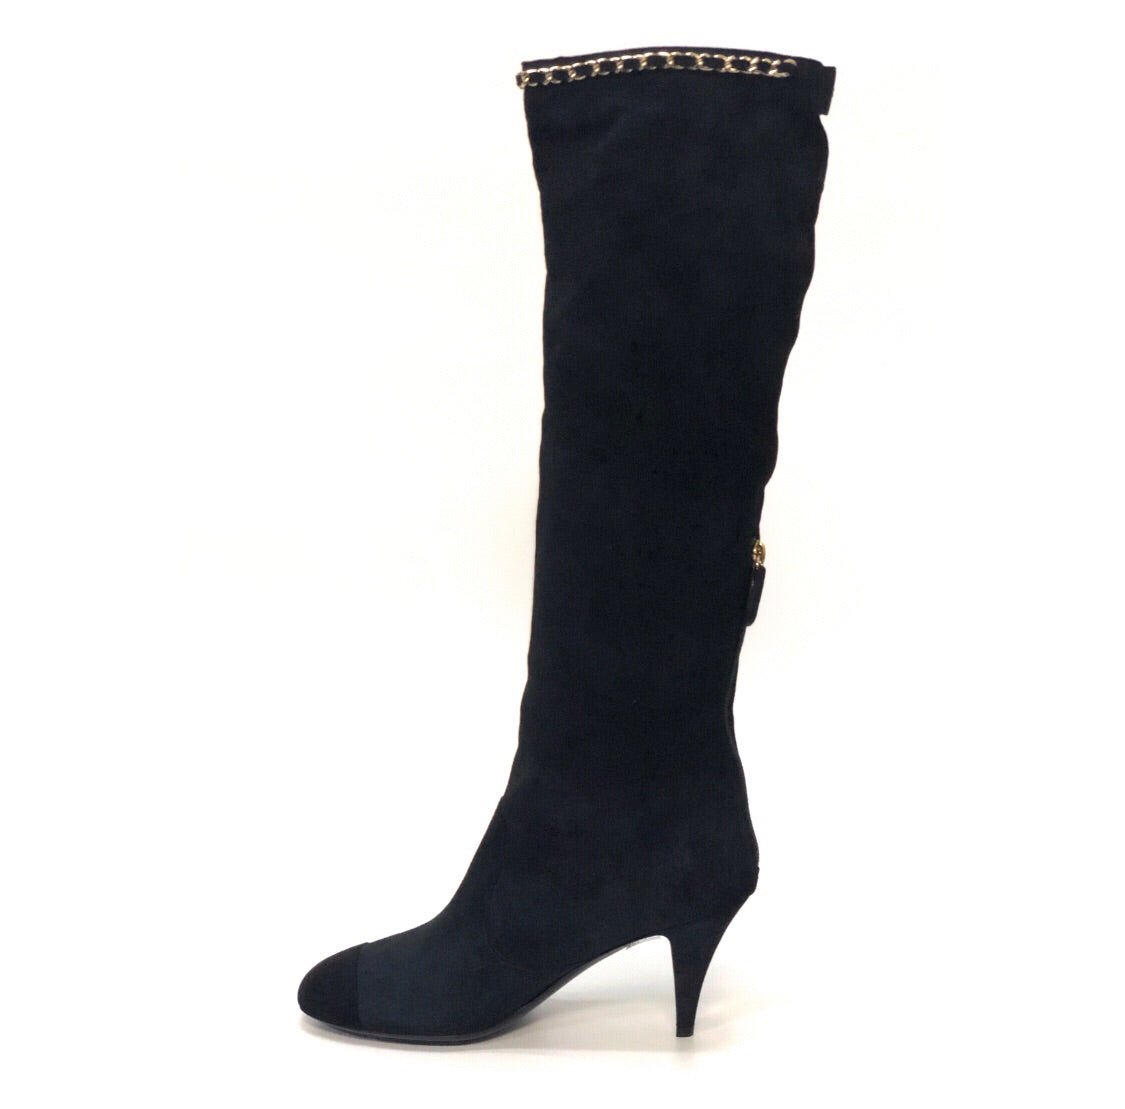 Chanel Chain Trim Knee High Boots